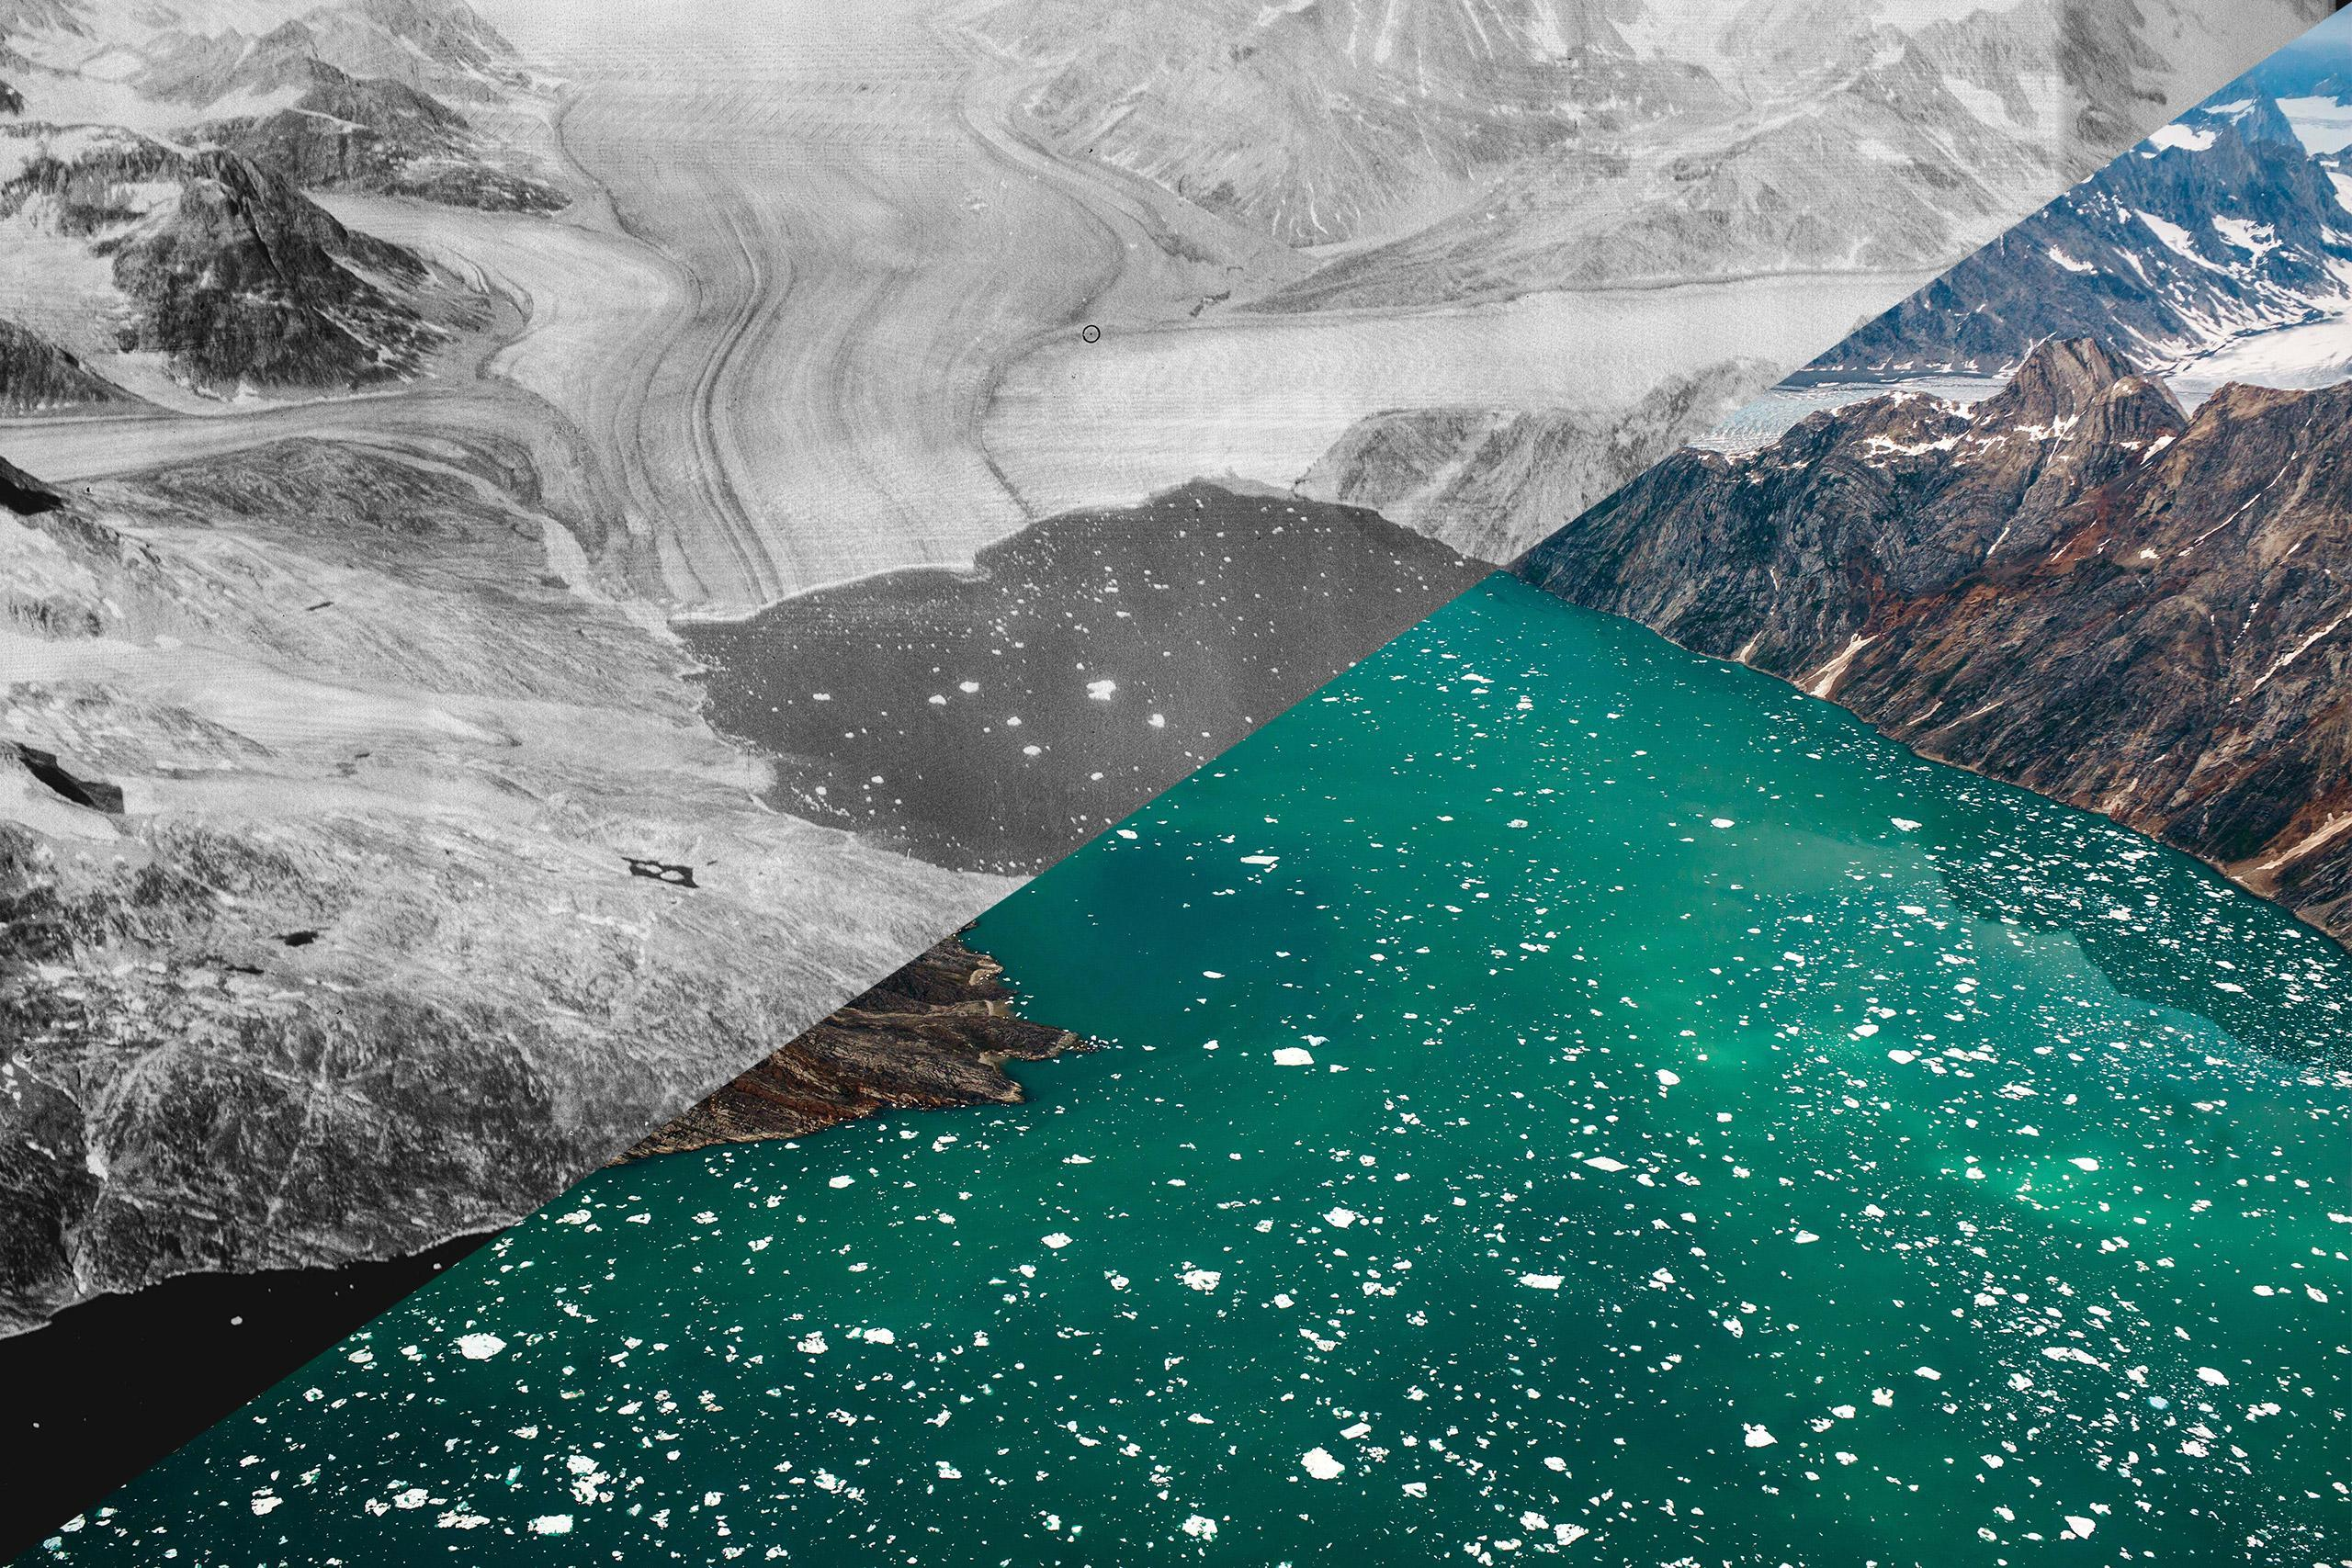 These Photos Show How Hard Climate Change Has Hit Greenland